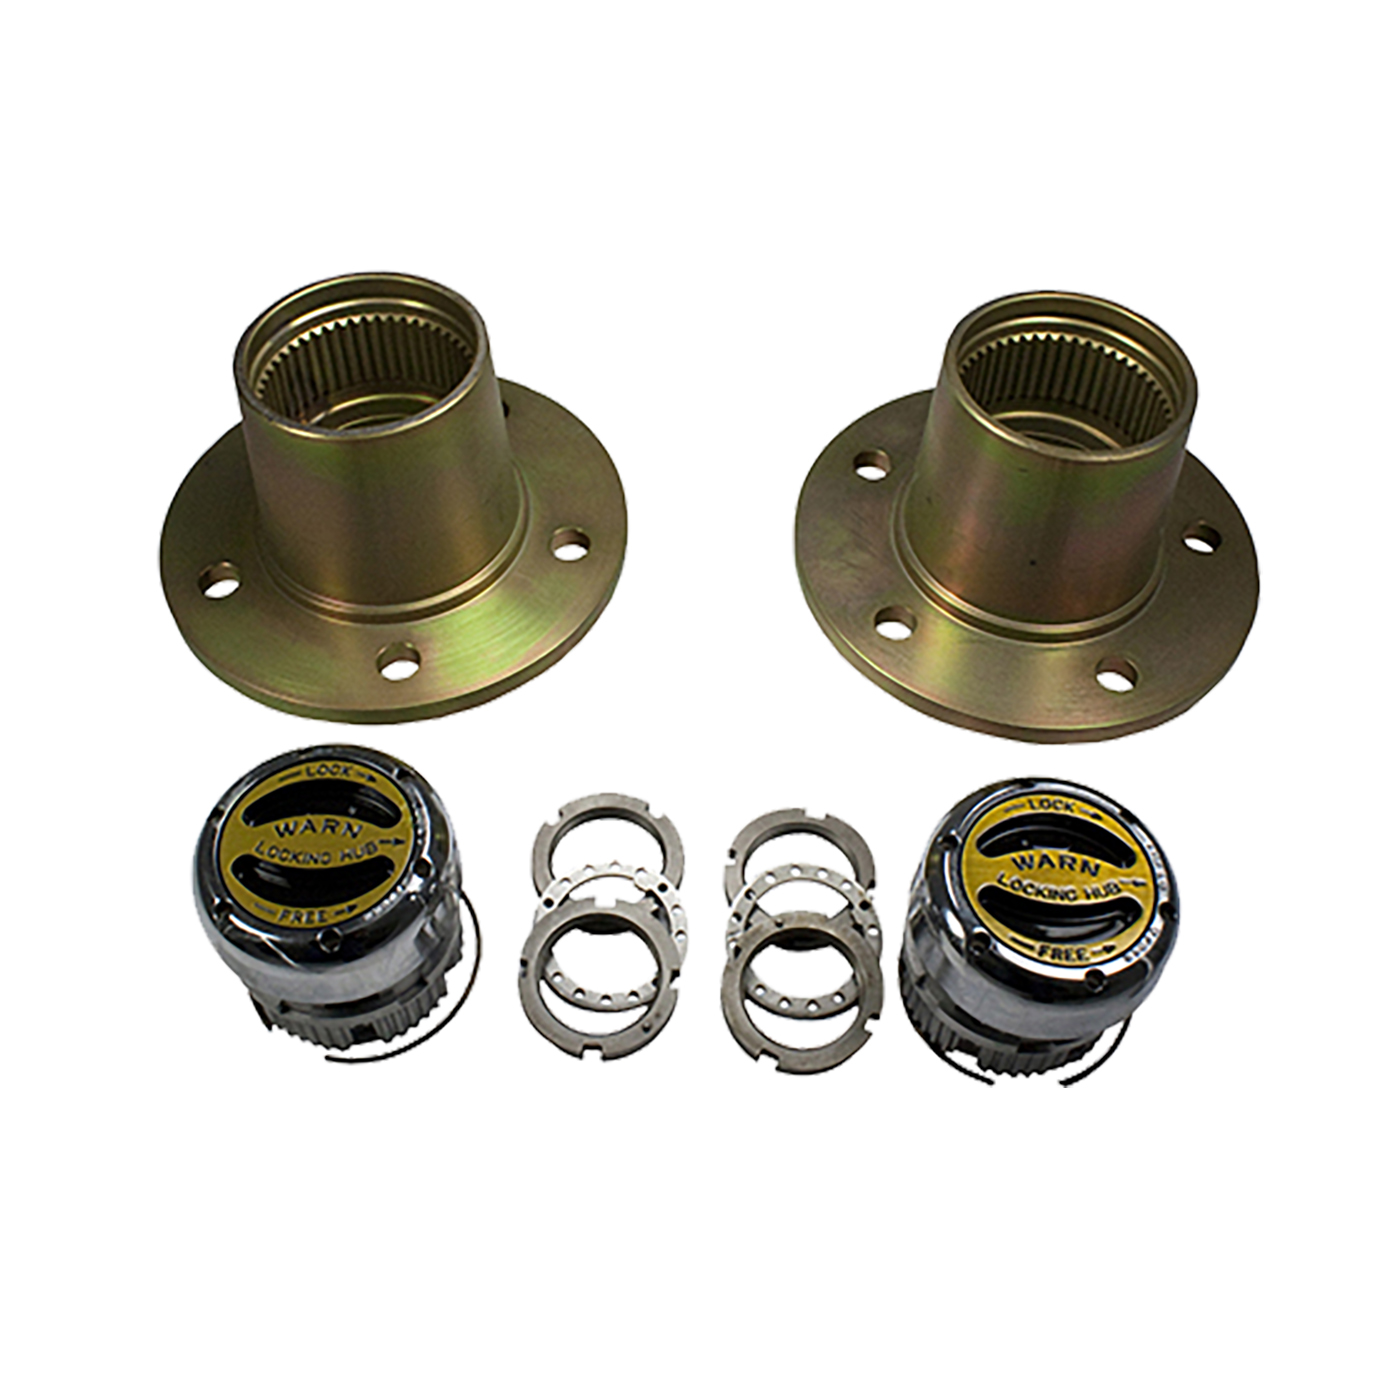 YA W61650 - Front Hub conversion kit, CJ & Scout, 5 X 5.5